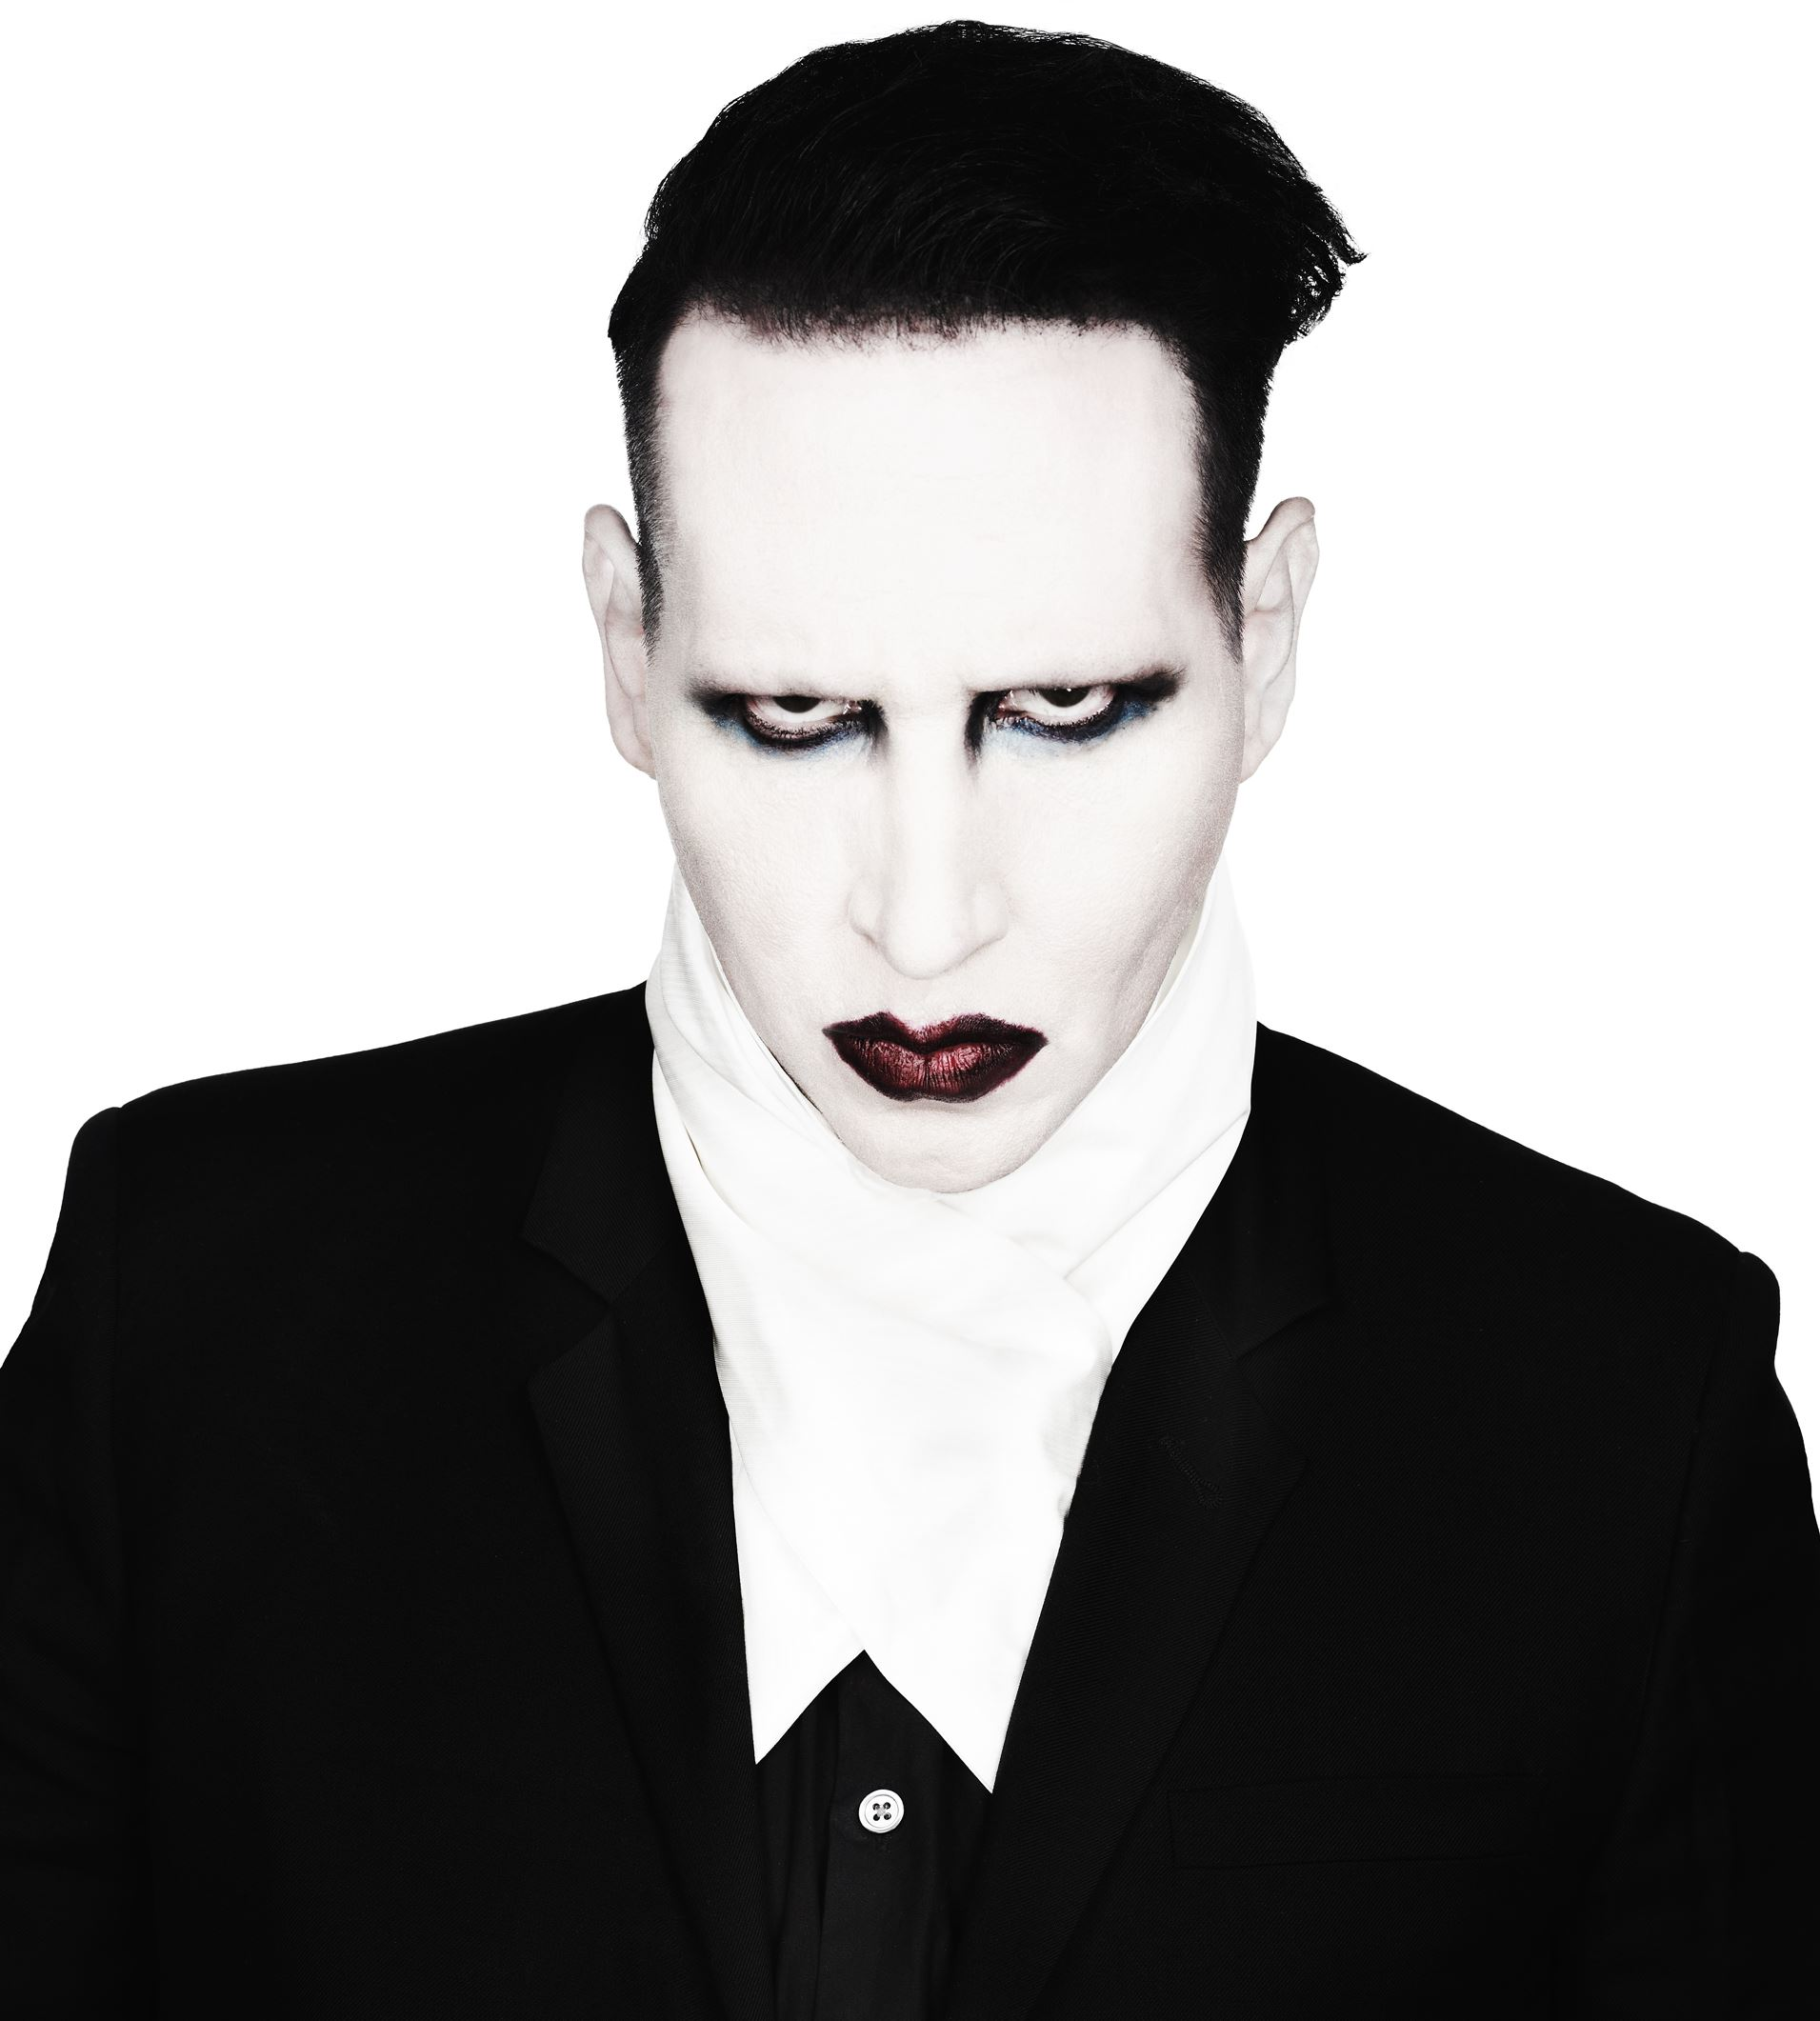 Marilyn Manson Backgrounds, Compatible - PC, Mobile, Gadgets  1911x2122 px